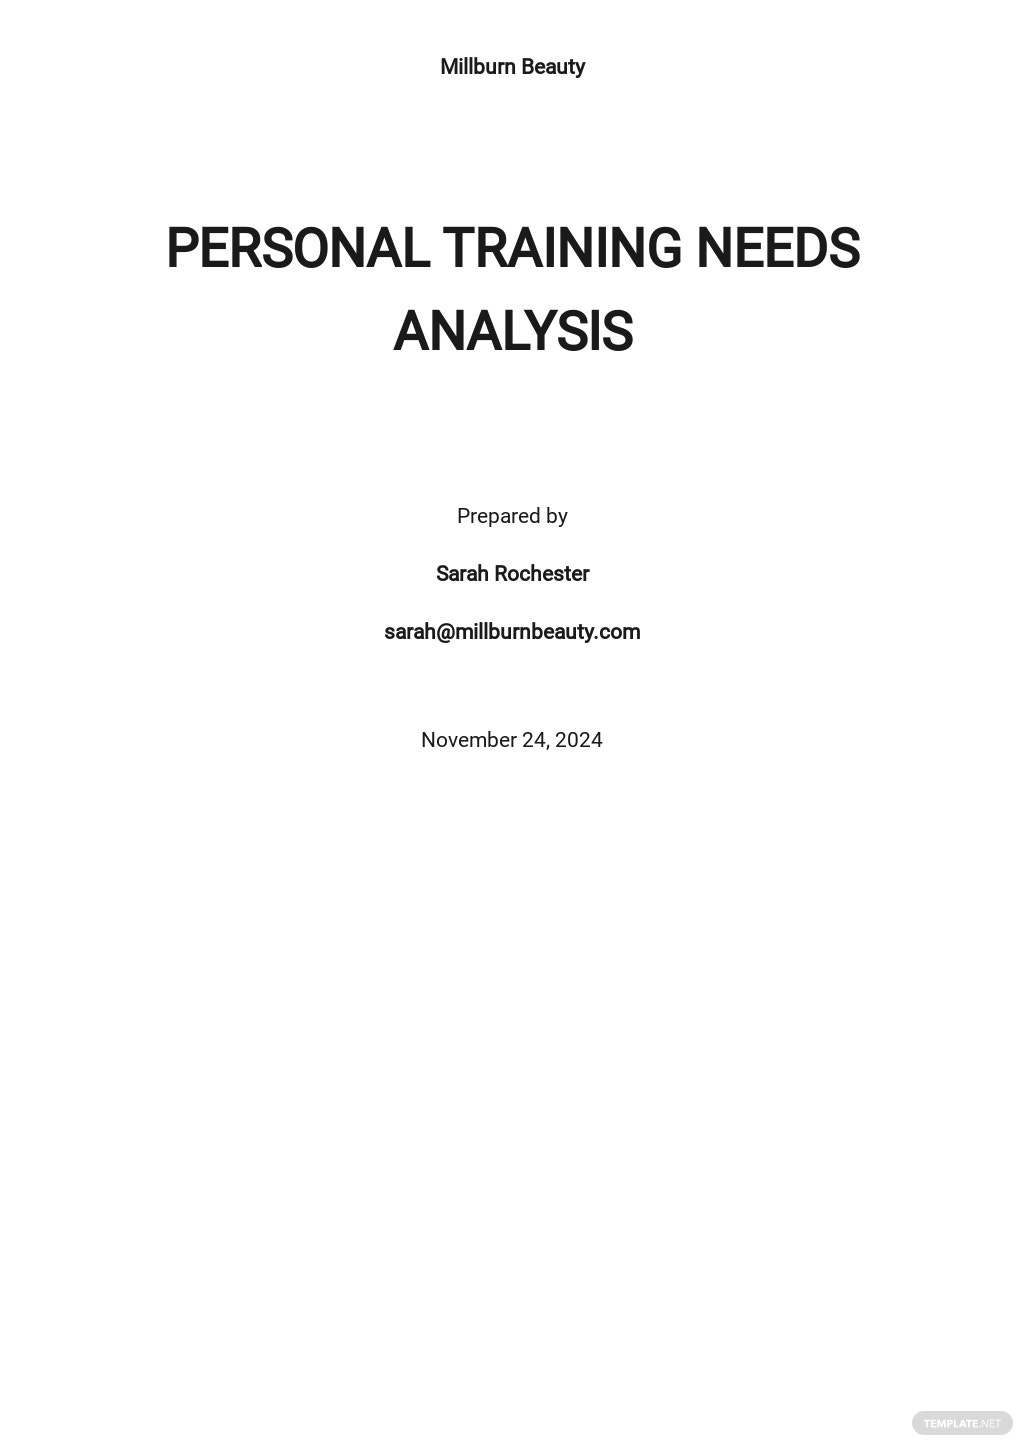 Personal Training Needs Analysis Template